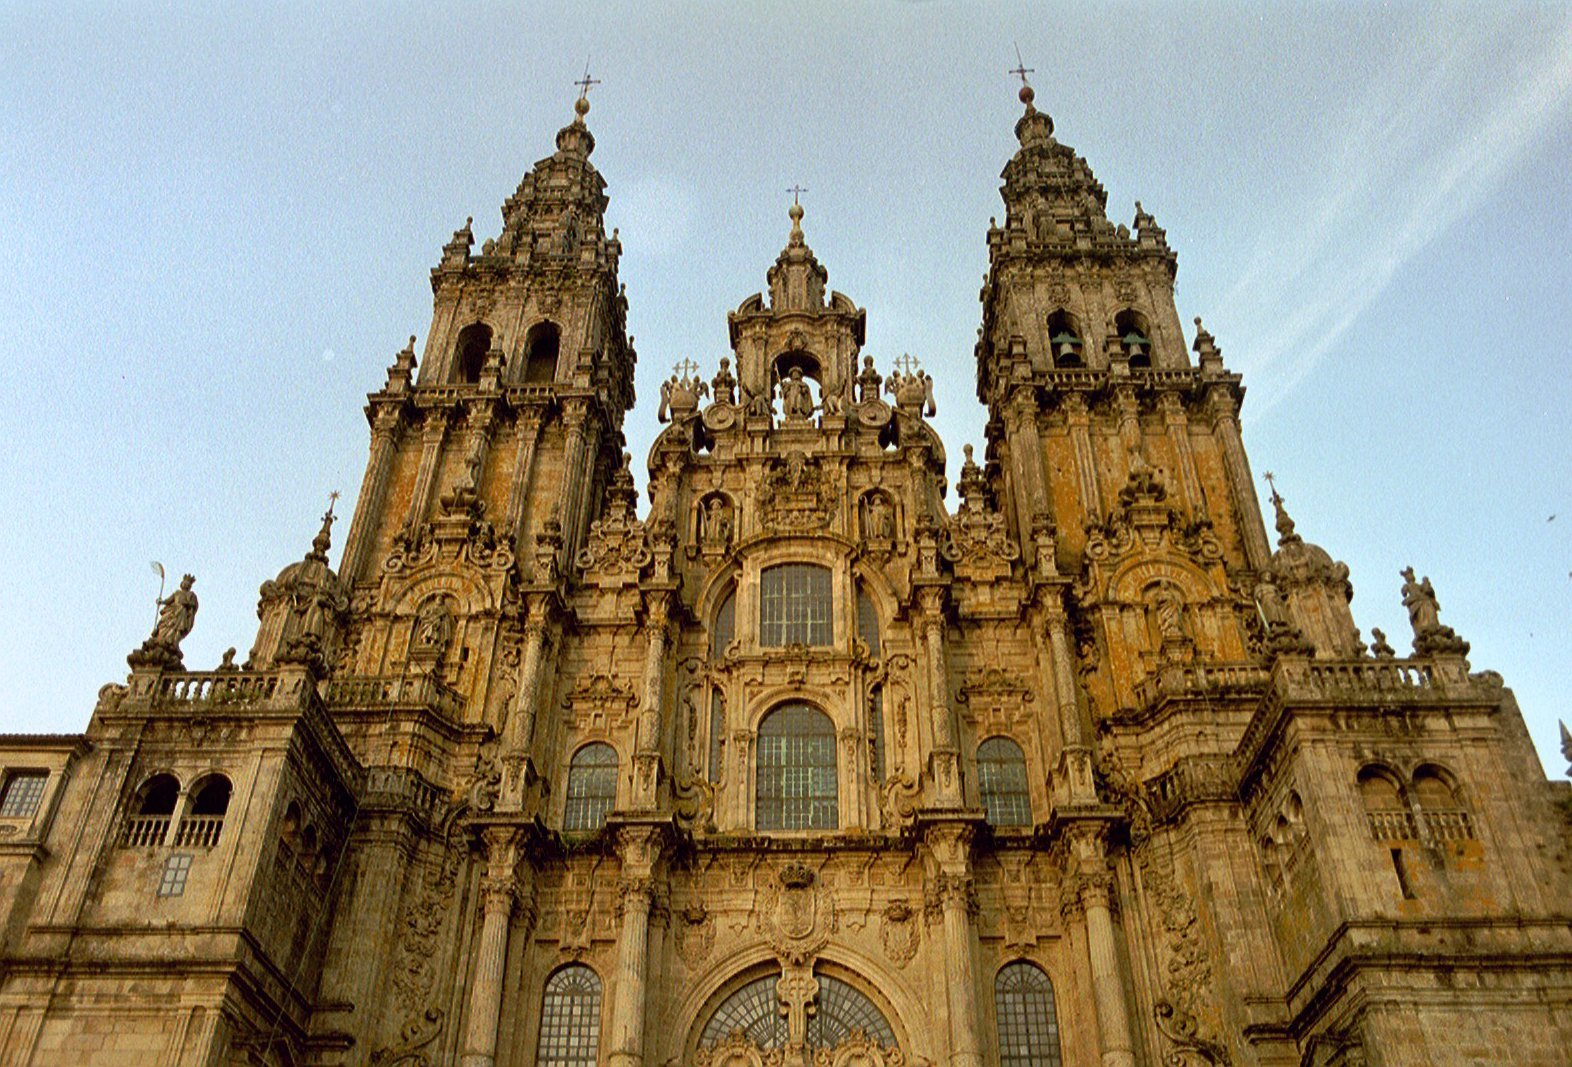 Camino de Santiago is a journey to the Cathedral of Santiago de Compostela in Spain in honor of Apostle St. James.